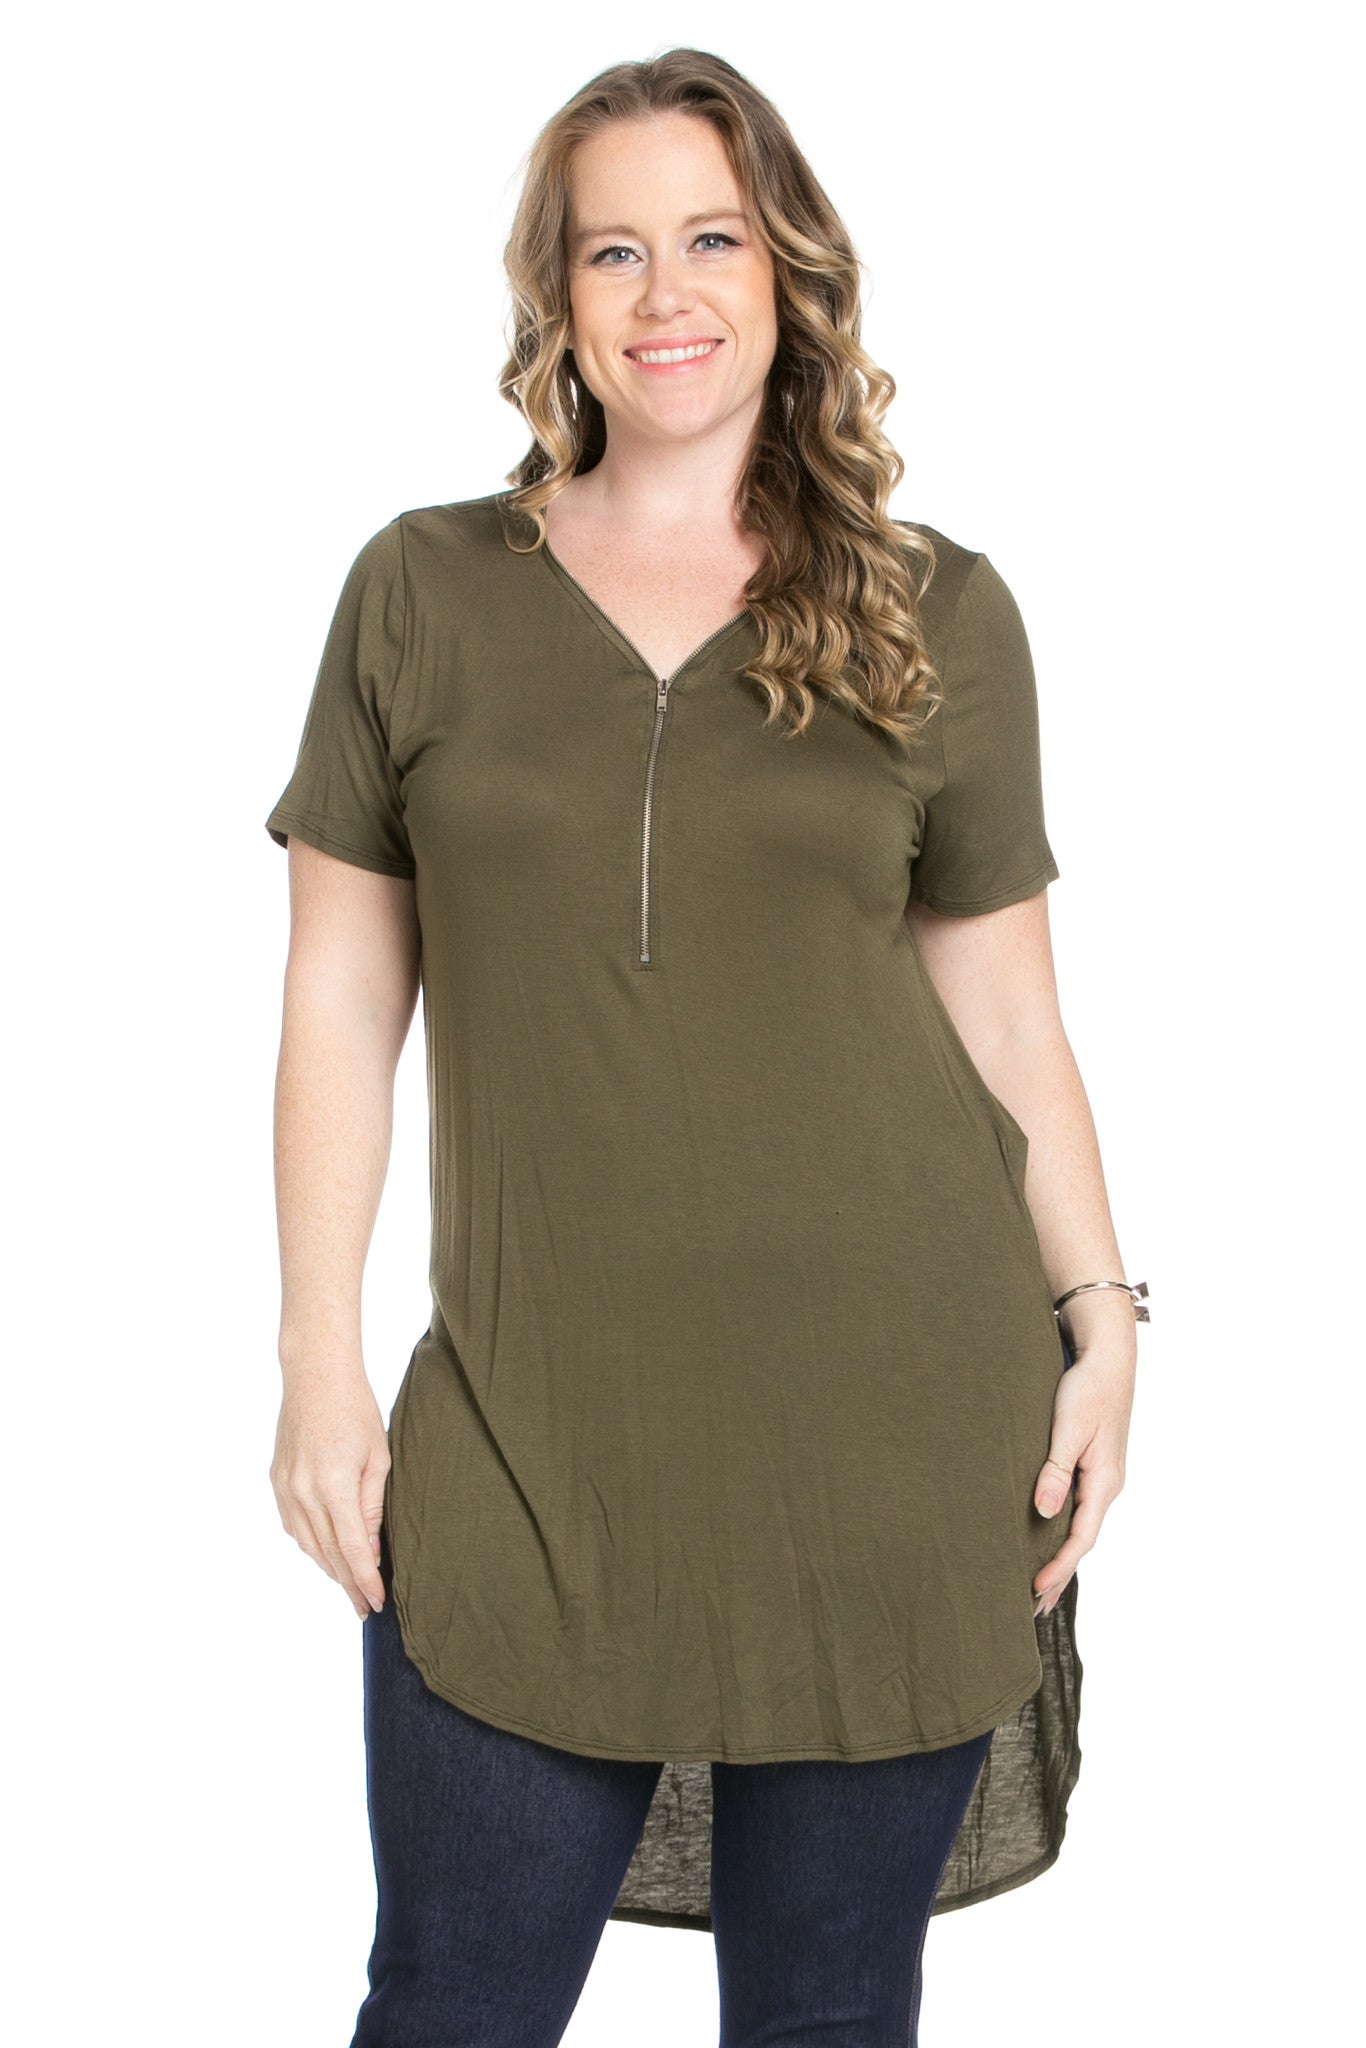 Olive Zipper Party In The Front - Blouses - My Yuccie - 1